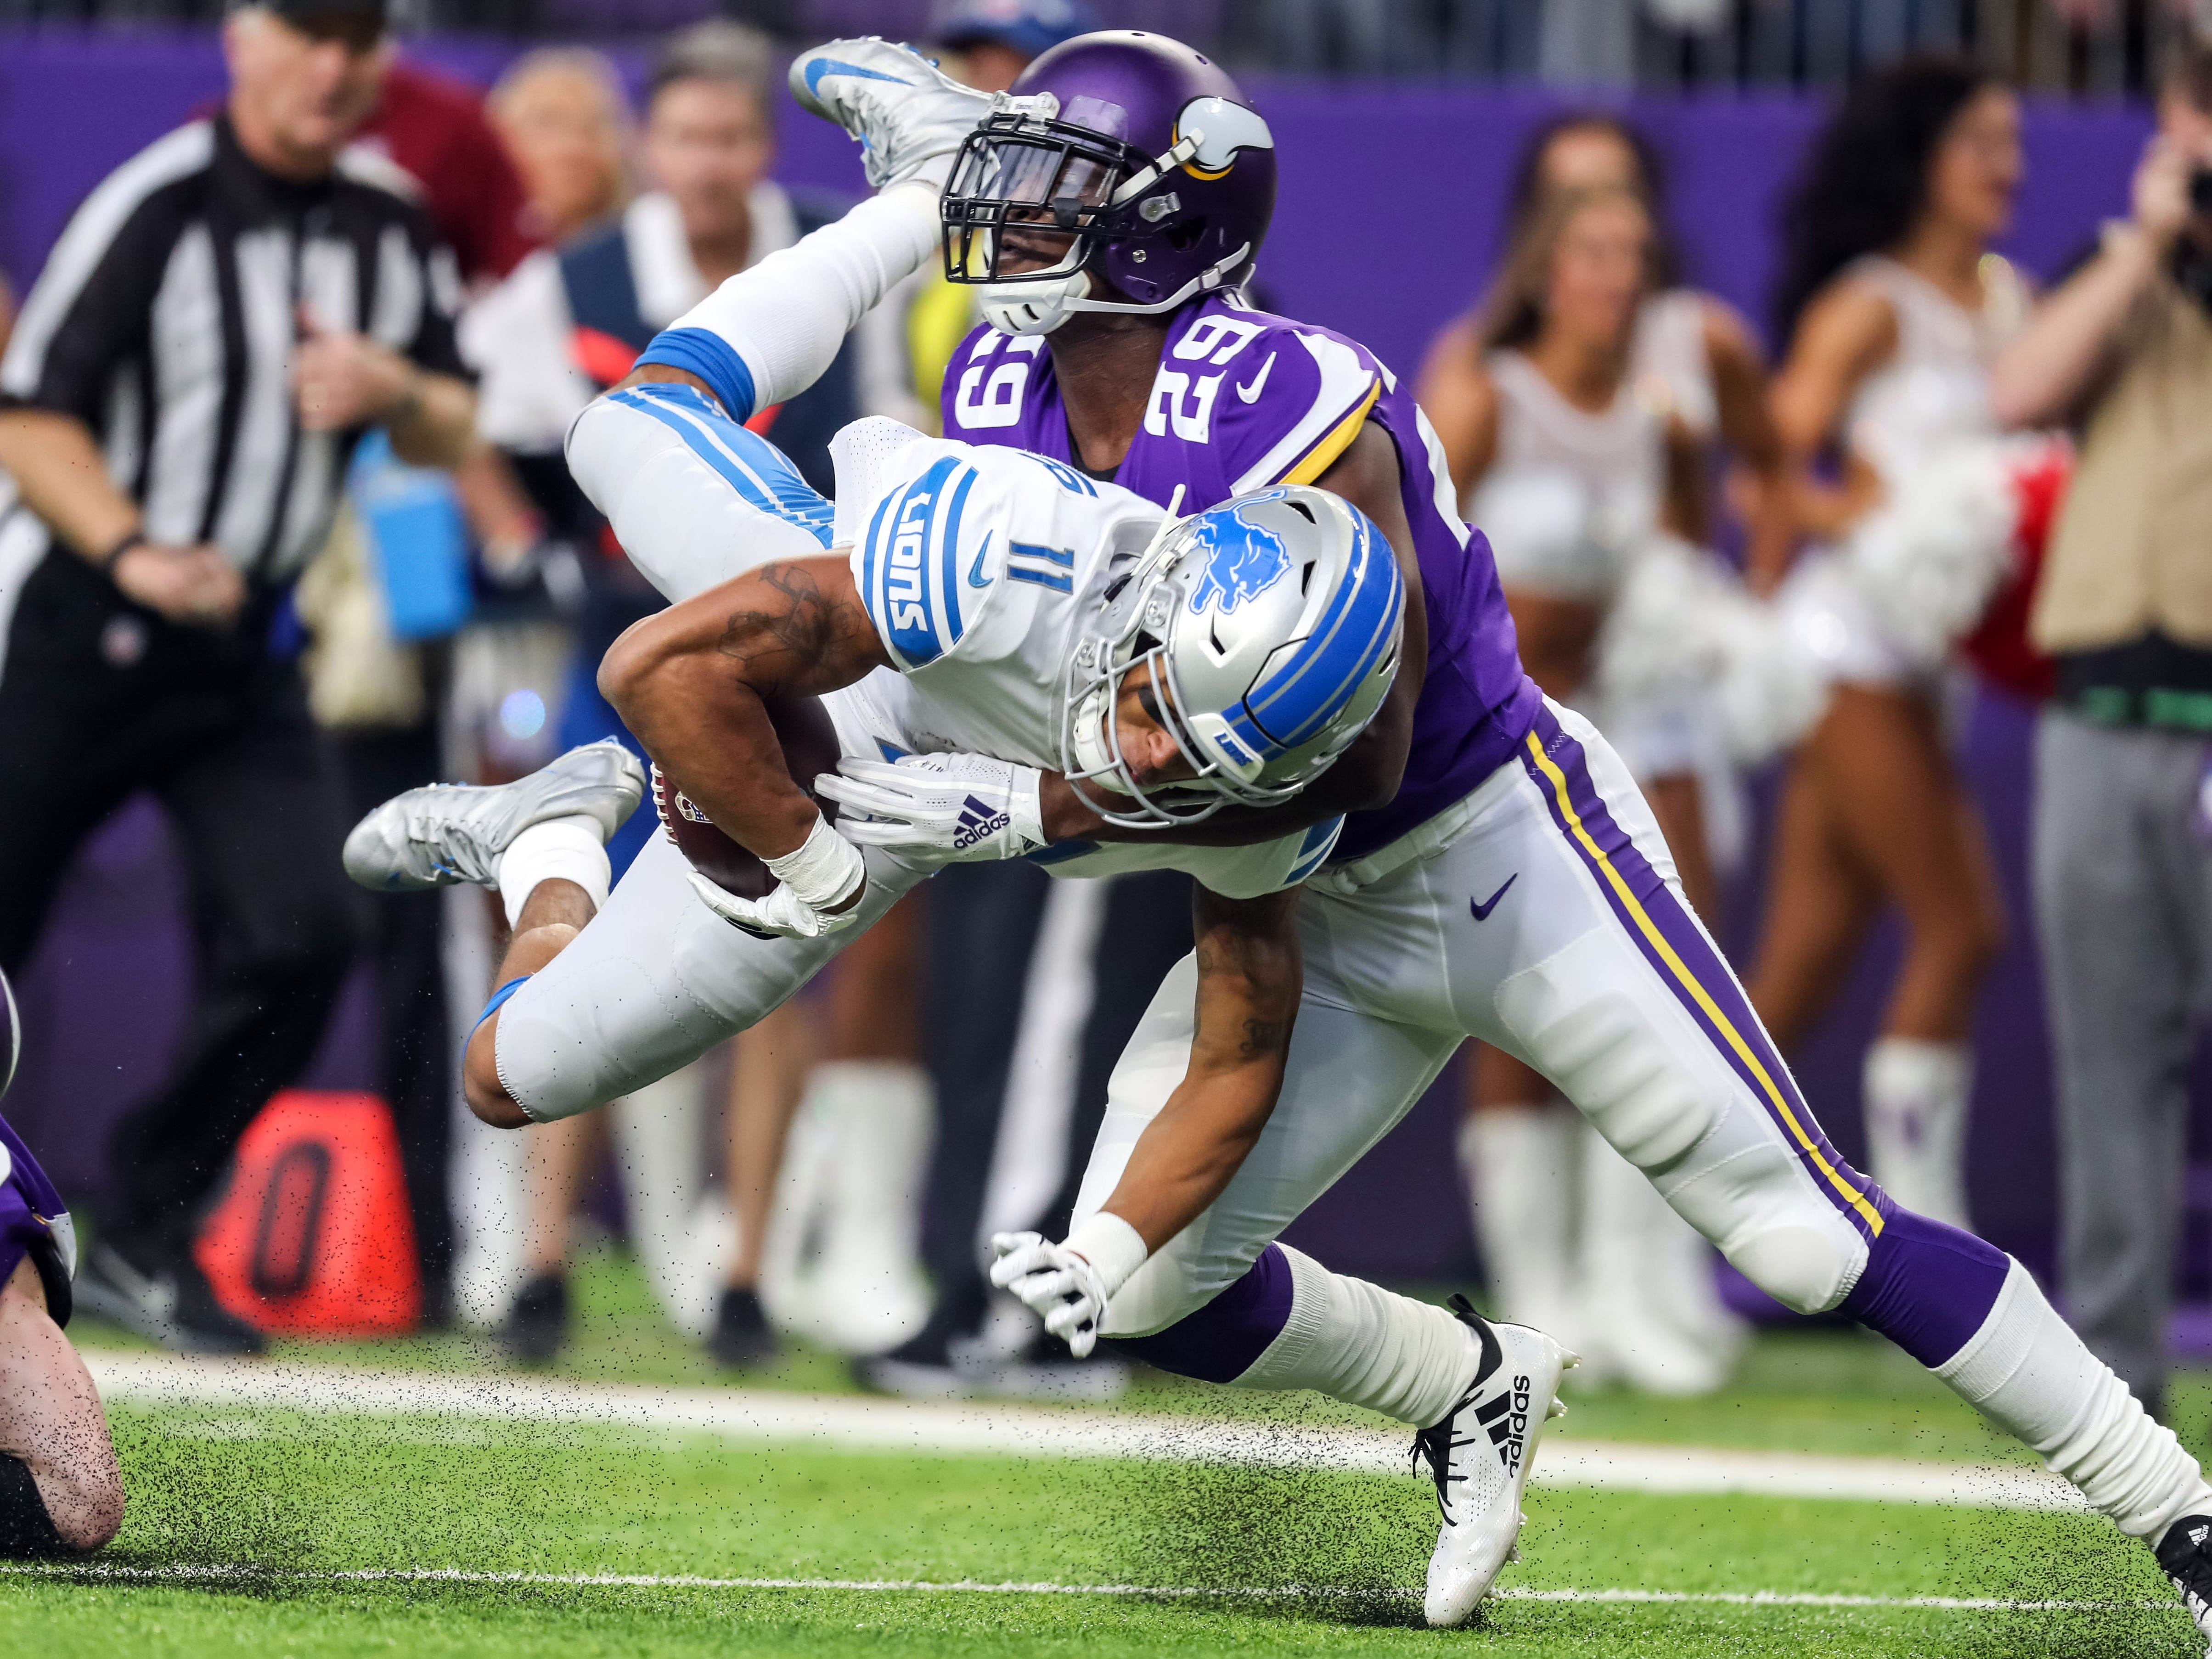 Minnesota Vikings cornerback Xavier Rhodes hits airborne Detroit Lions wide receiver Marvin Jones Jr. (11) during the first half at U.S. Bank Stadium.